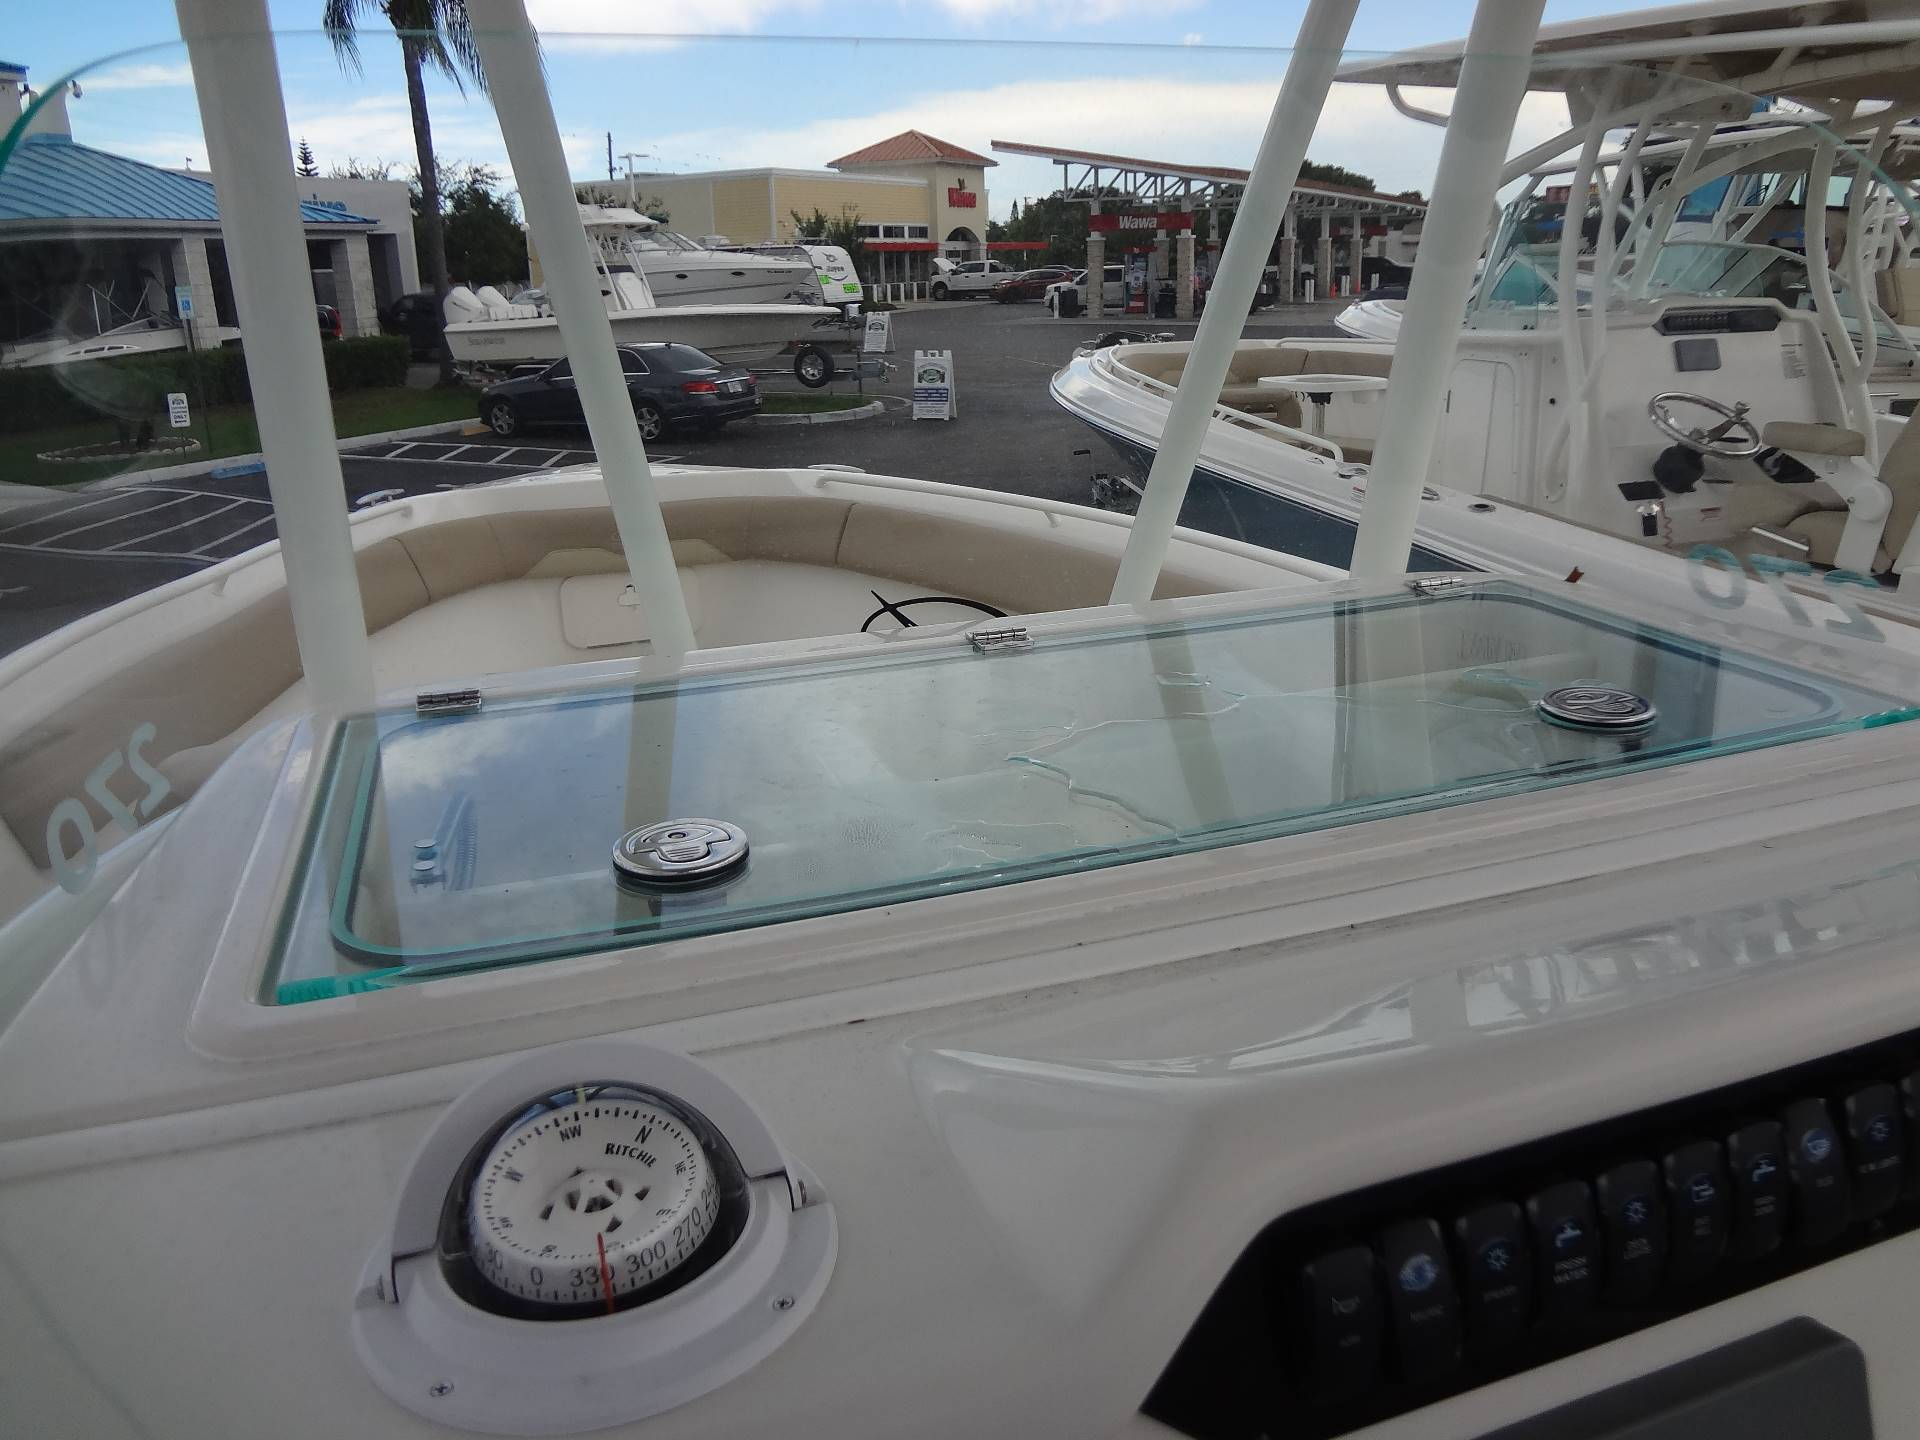 2020 Sailfish 270 CC in Holiday, Florida - Photo 36